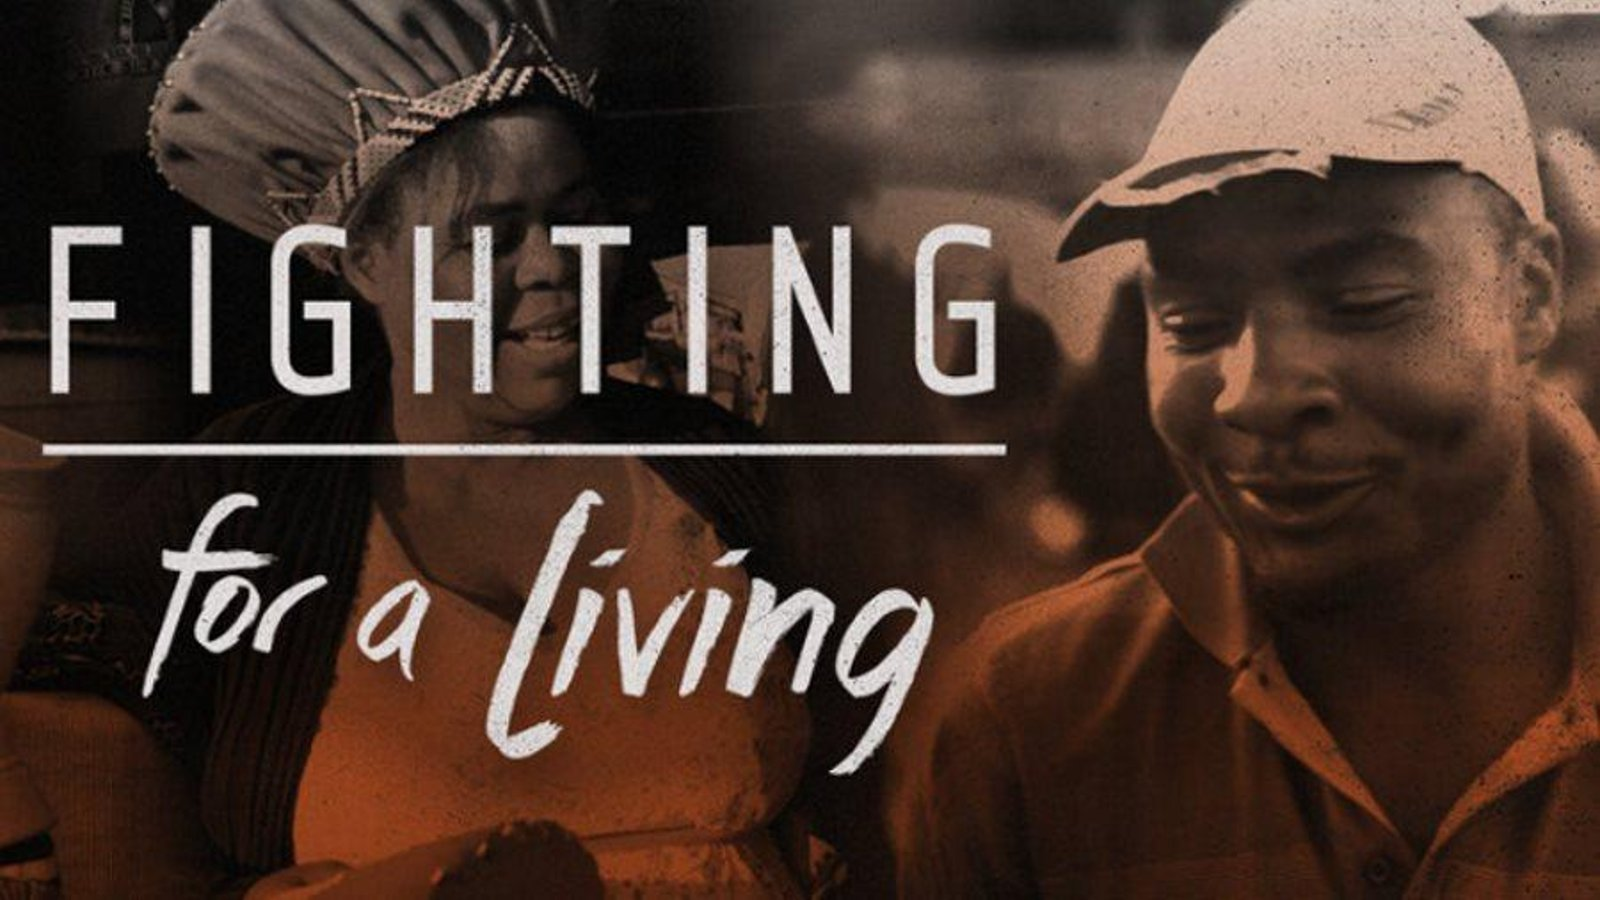 Fighting for a Living - South African Communities Demanding Change